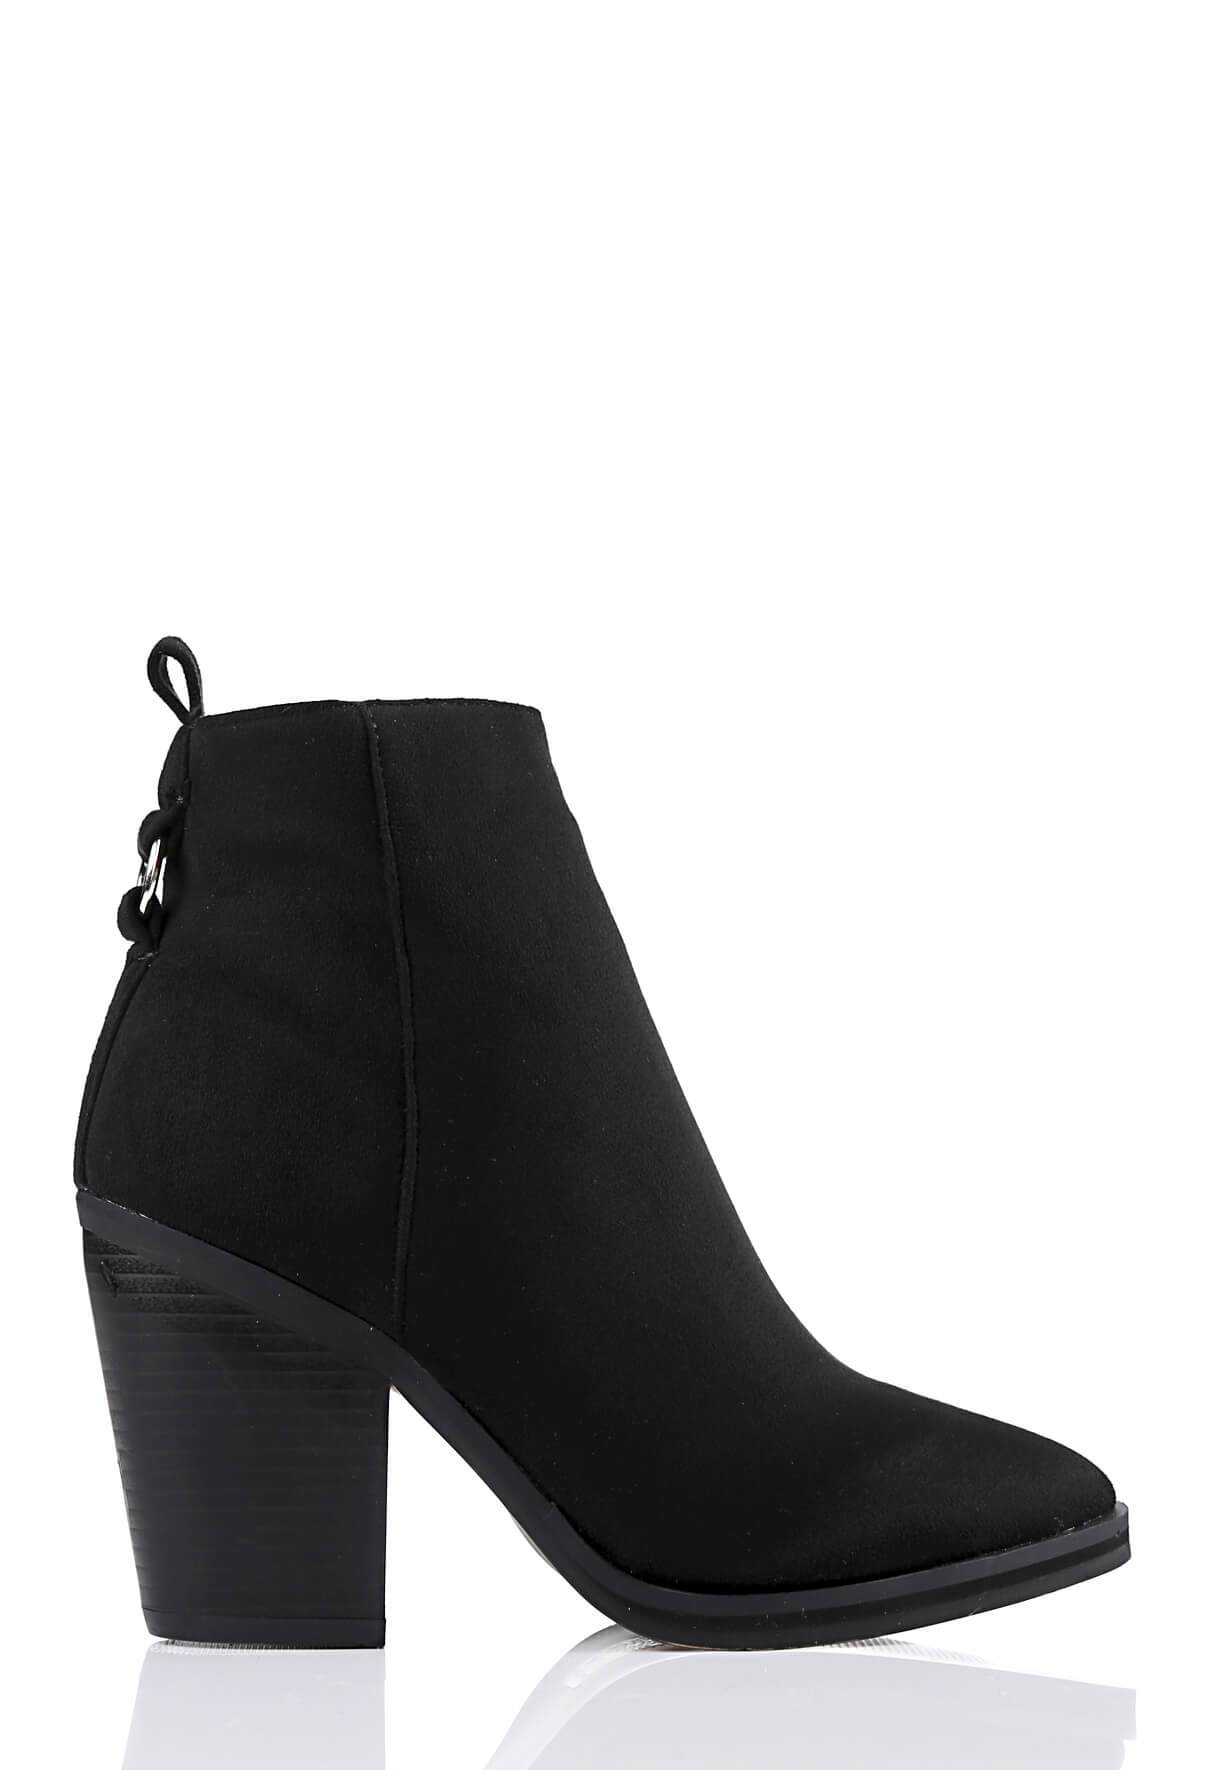 Wide Fit Black Suede Pointed Toe Boots